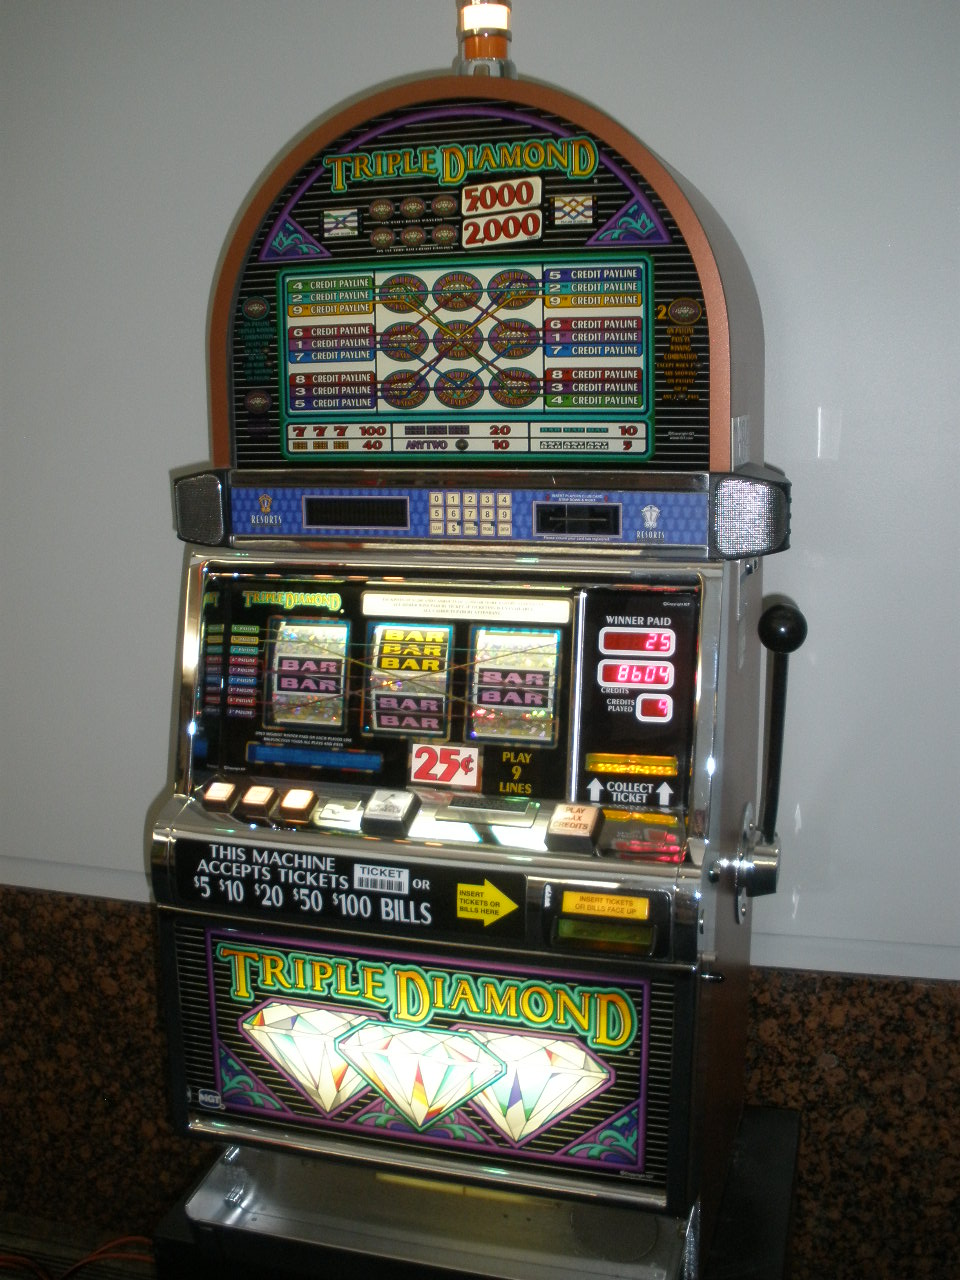 Nudge slot machine for sale near me